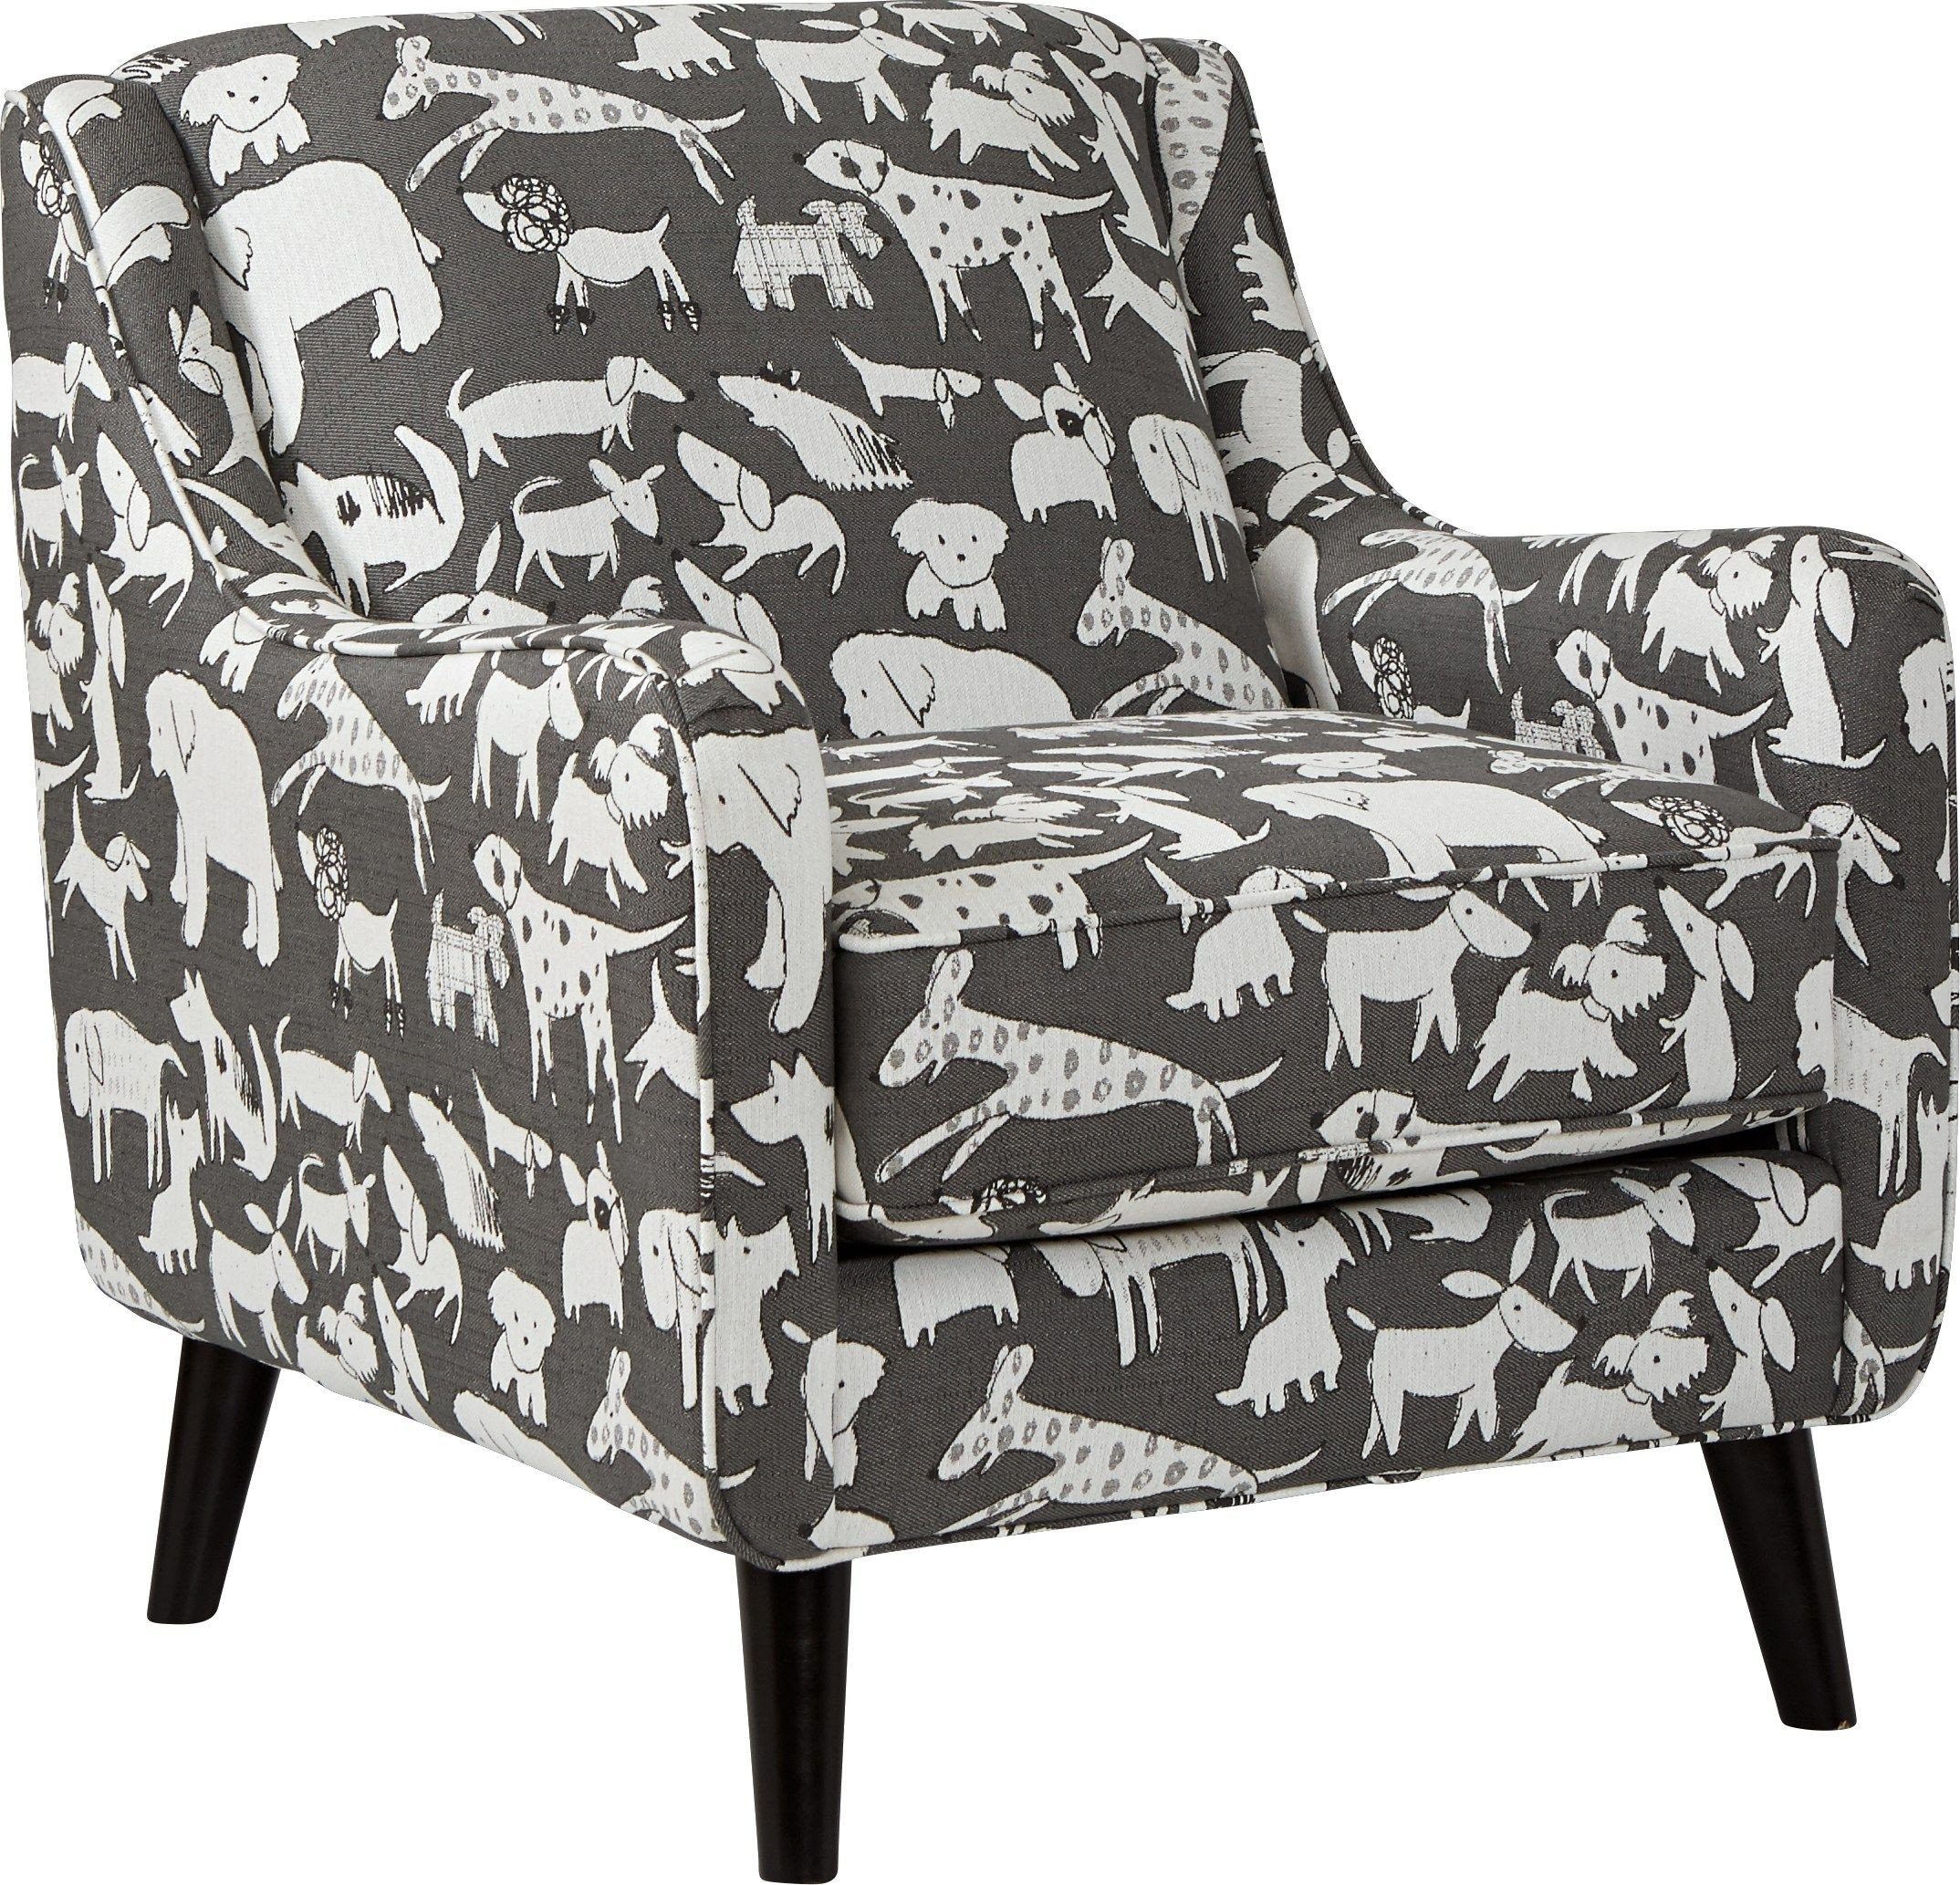 Decorative Chairs for Bedroom Elegant Barkley Heights Dog Patterned Accent Chair